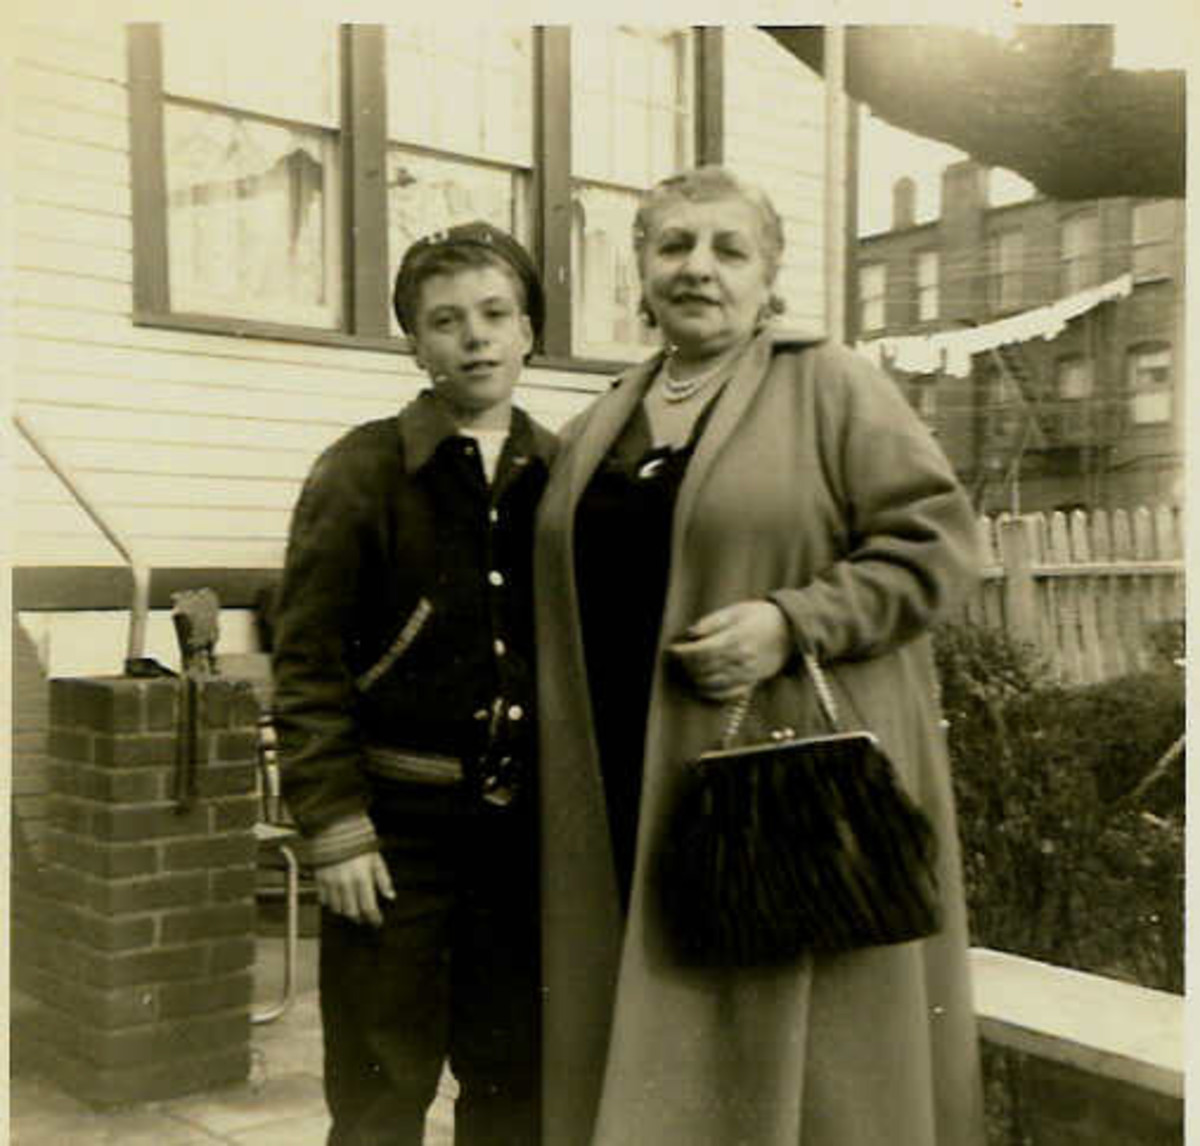 My Grandmother and Me in Front of her House on West 19th Street in Coney Island, Off Mermaid Ave.